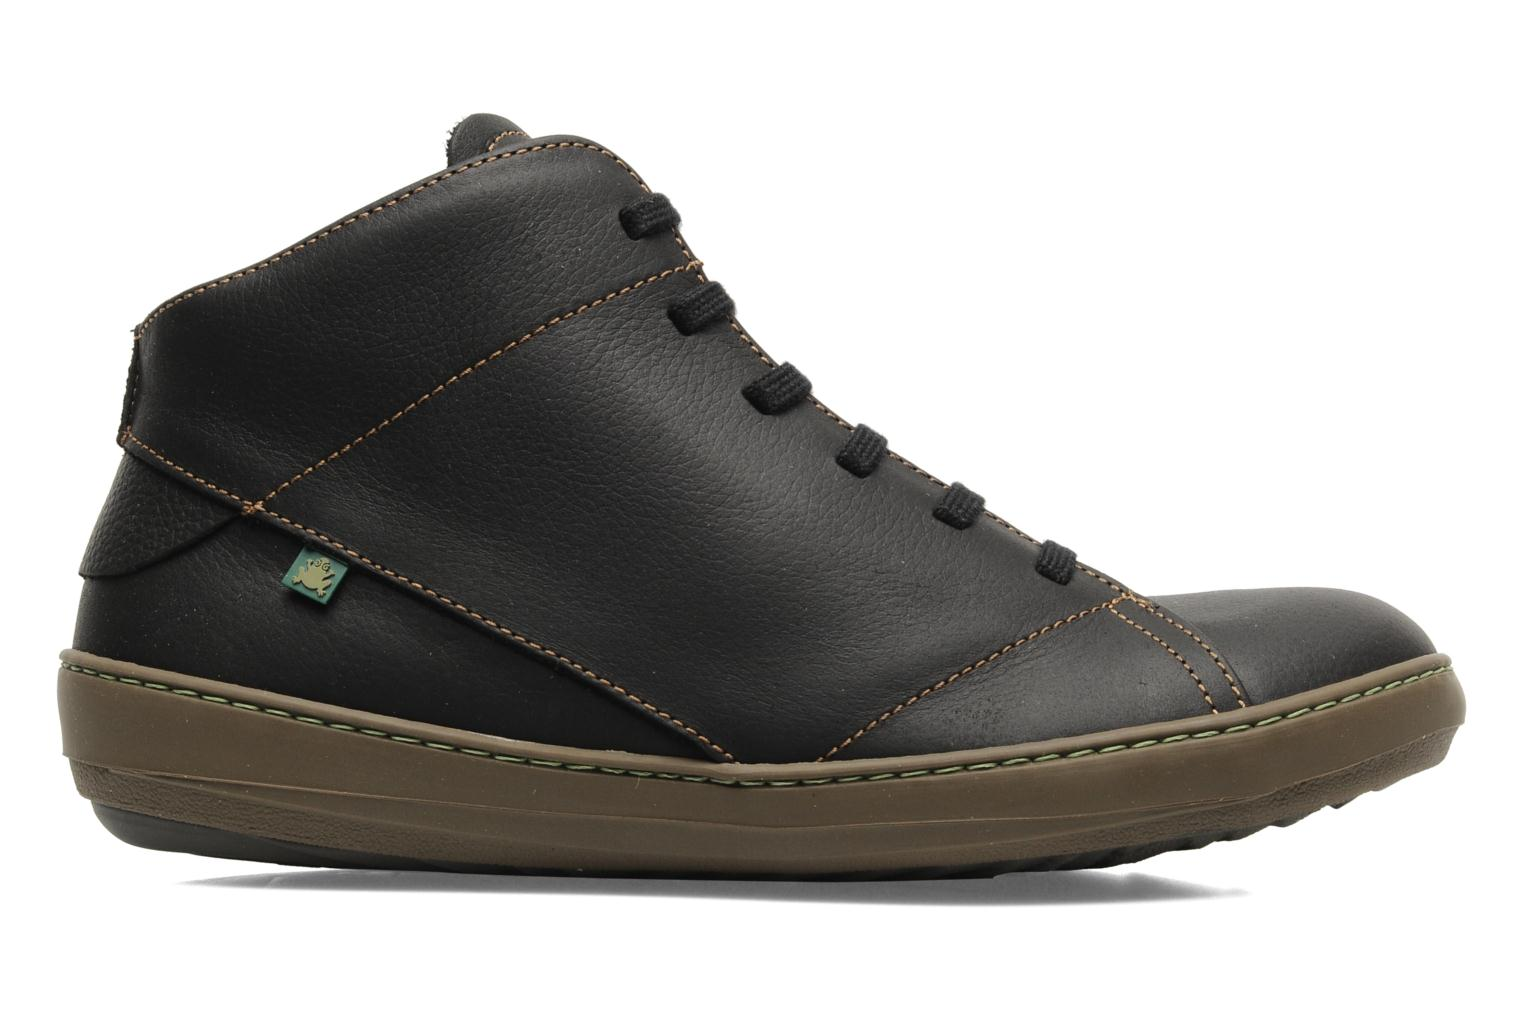 Meteo N212 Black soft grain